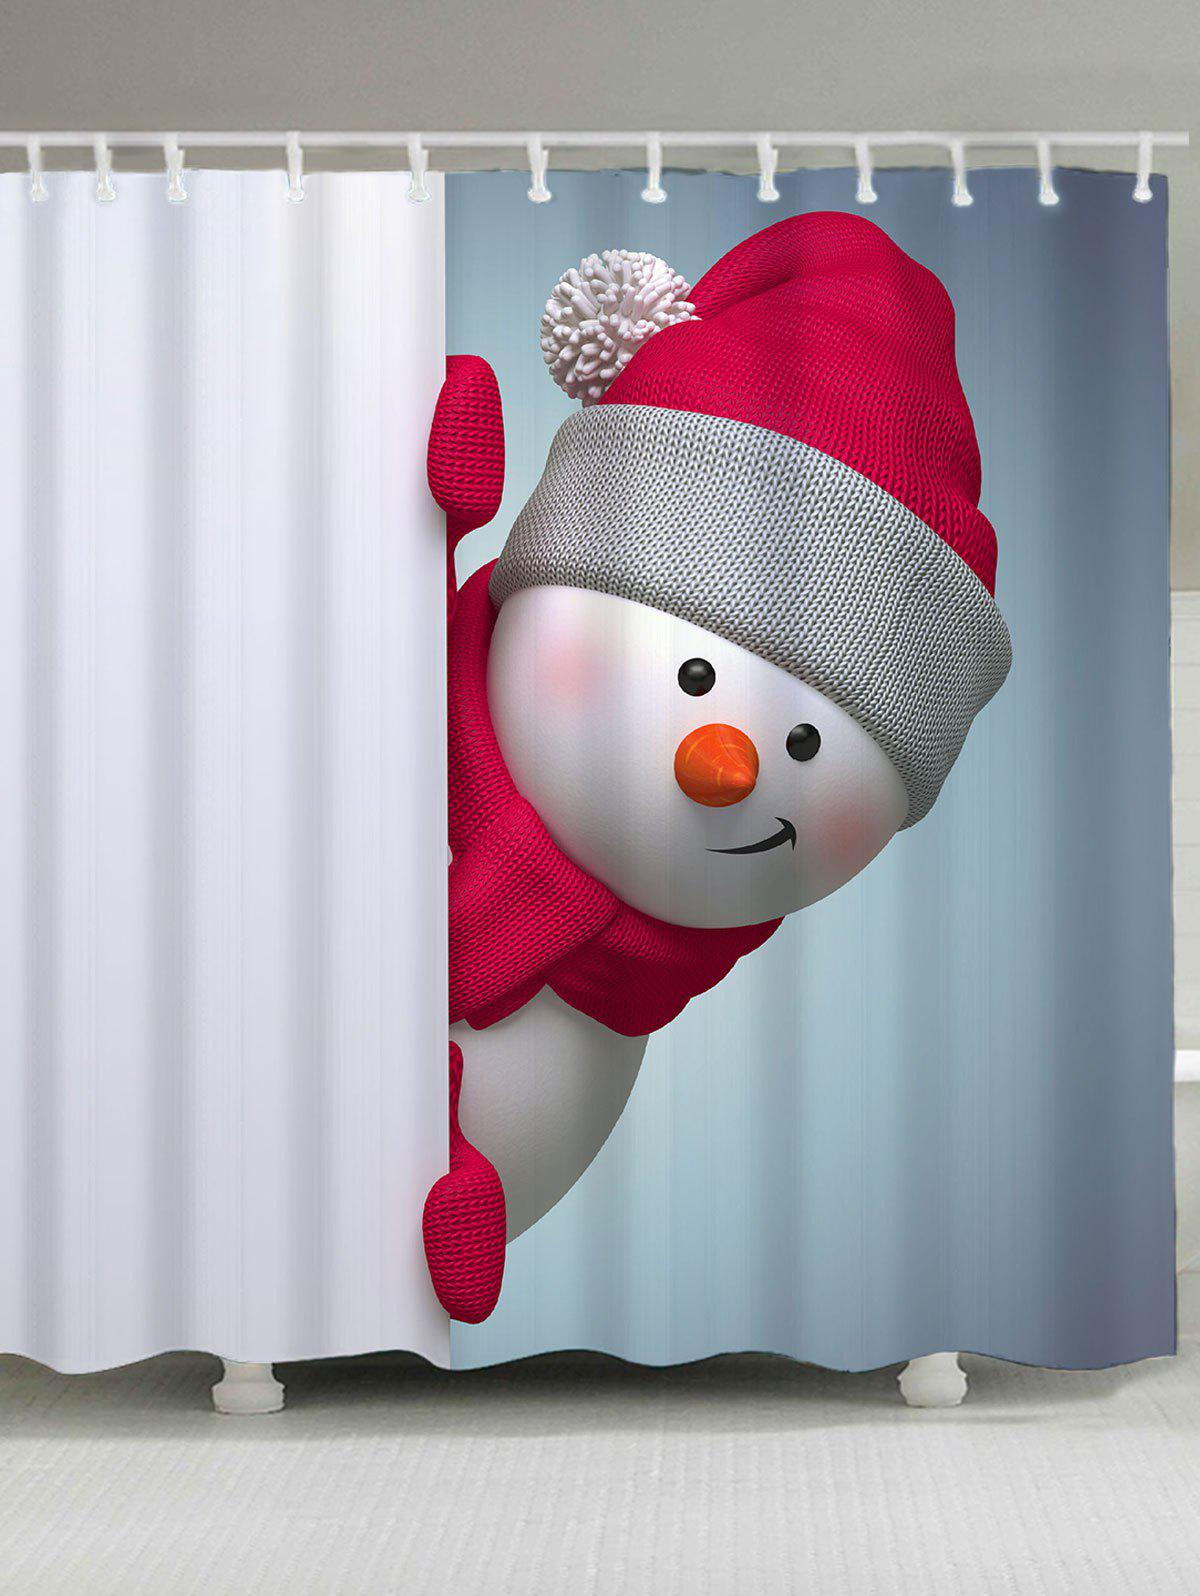 Christmas Snowman Printed Bath Curtain waterproof snowman printed bath christmas shower curtain